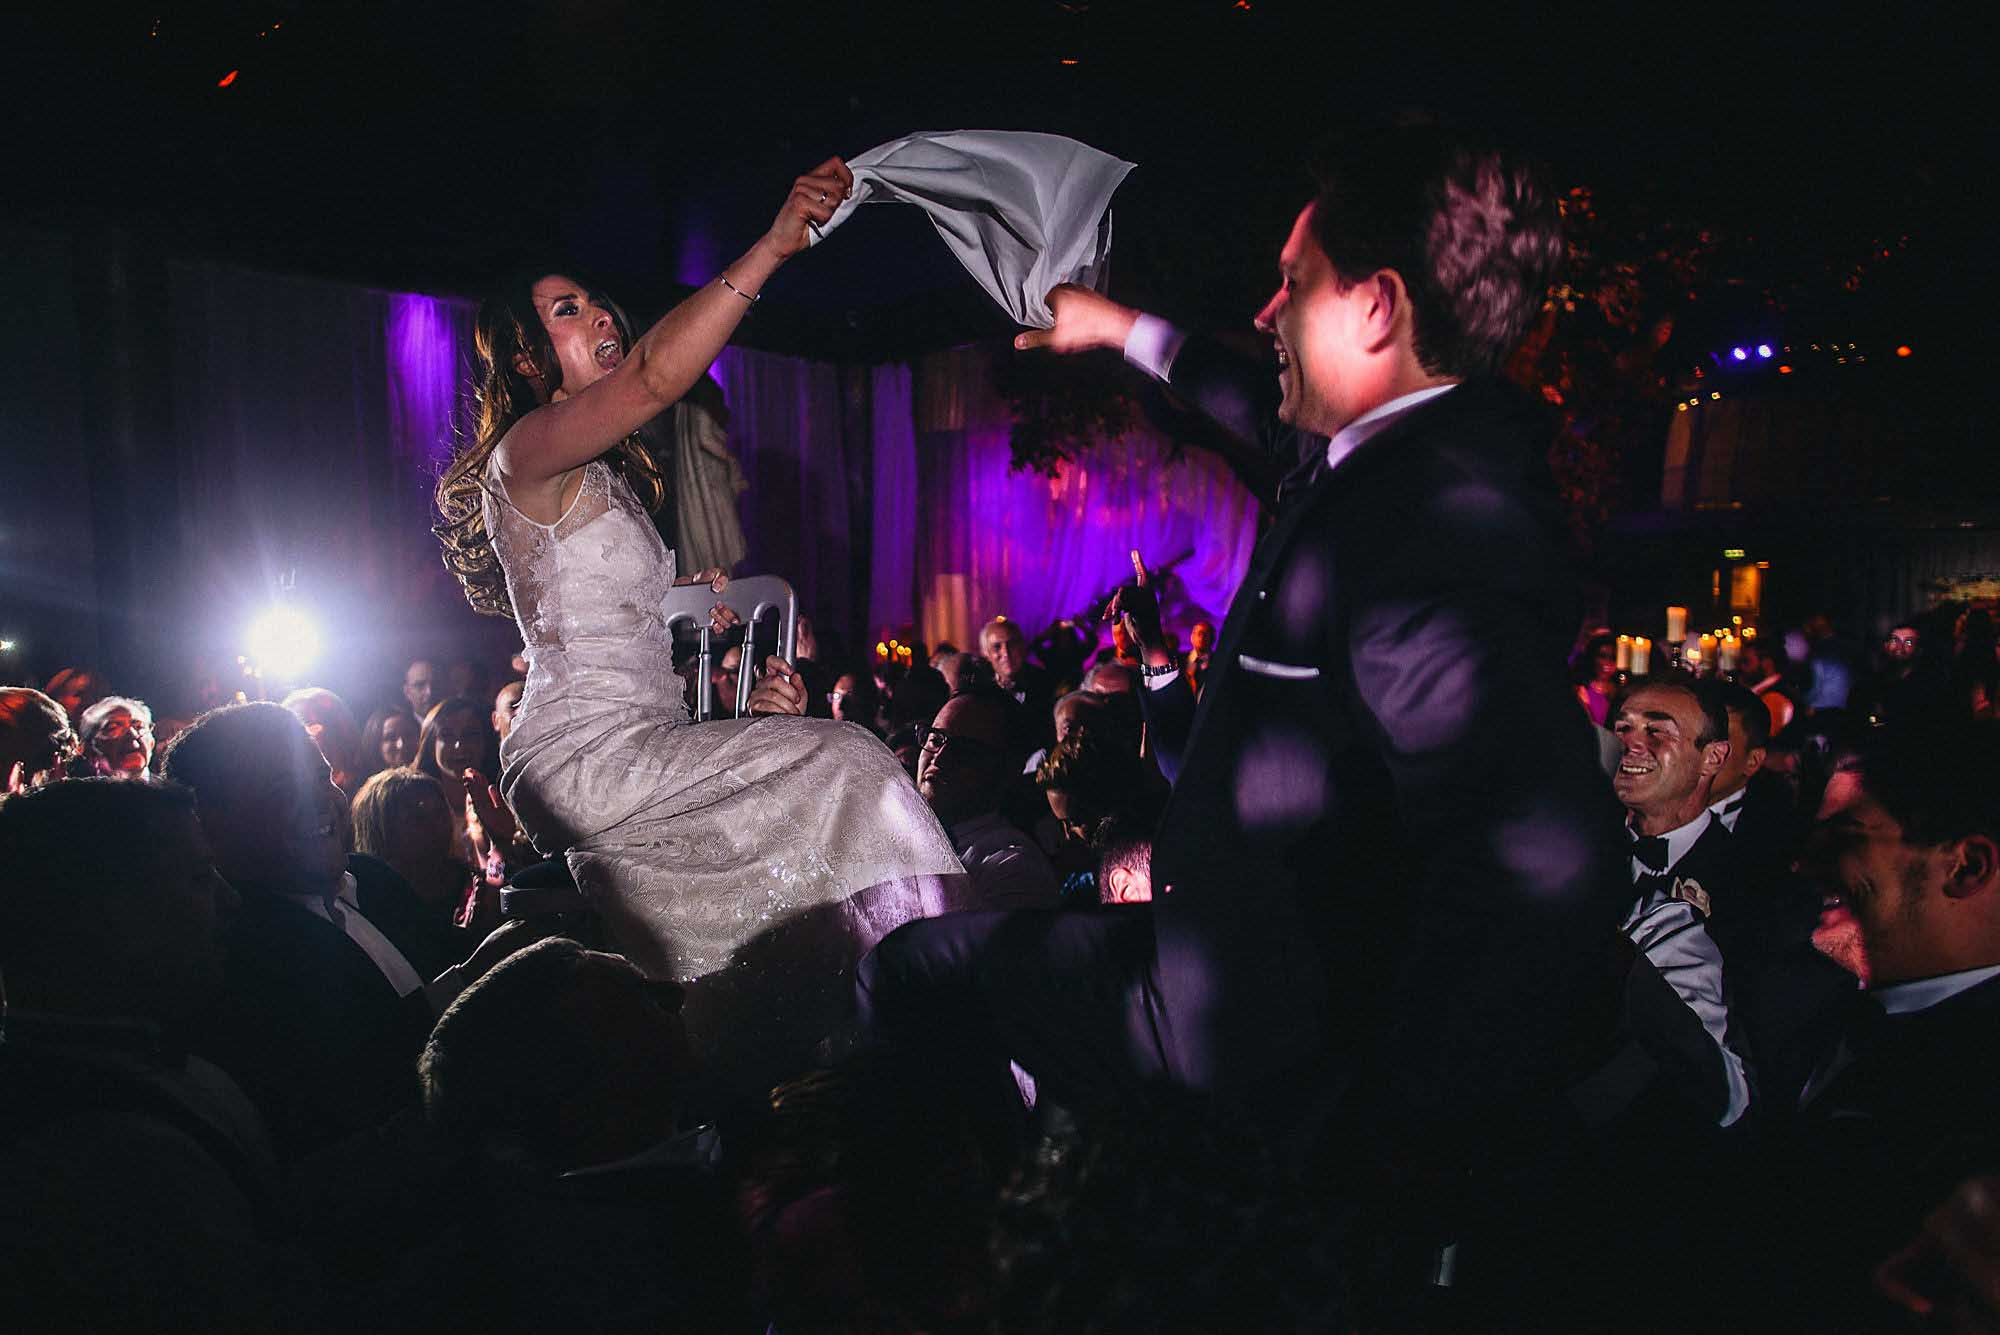 Jewish Wedding Dance Photos